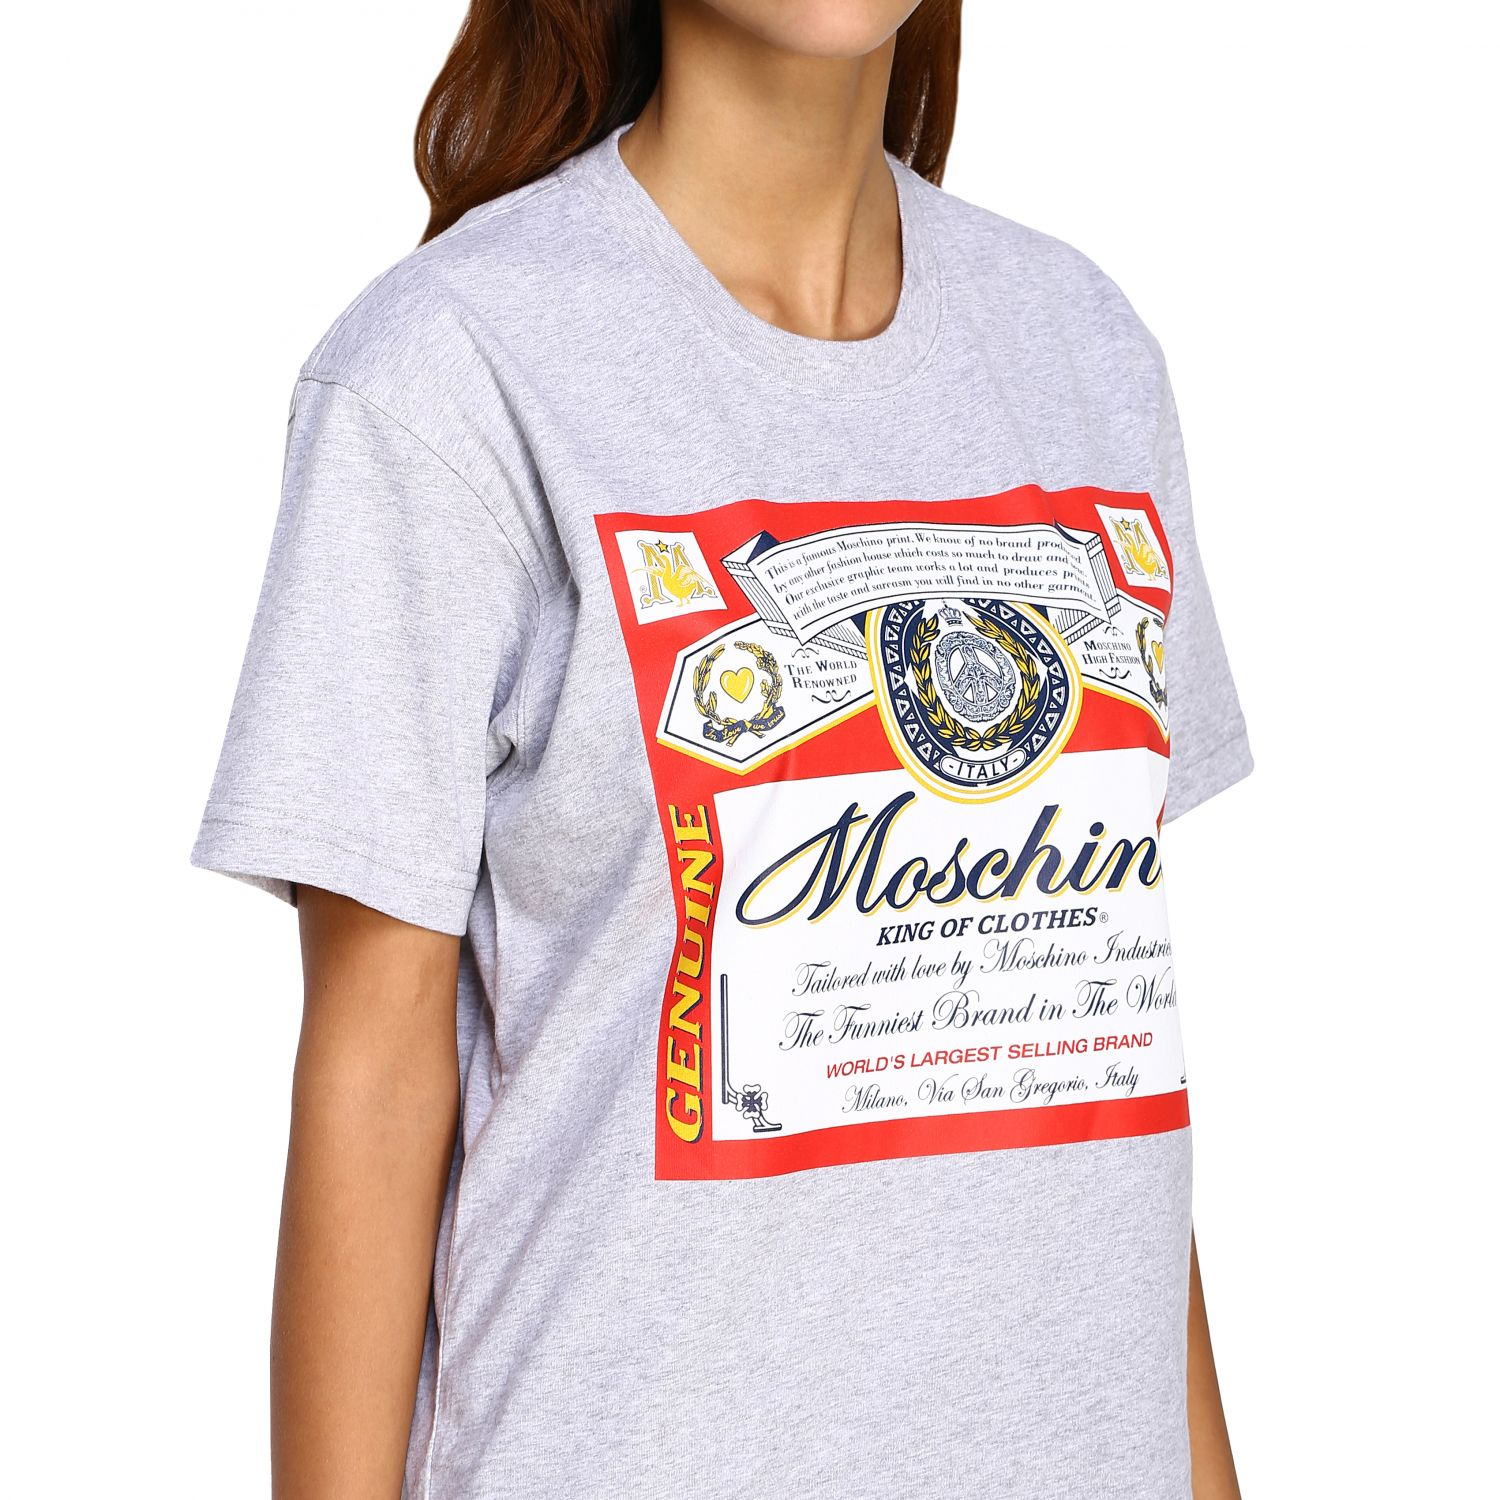 T-shirt Capsule Collection Moschino X Budweiser in jersey di cotone rosso 5